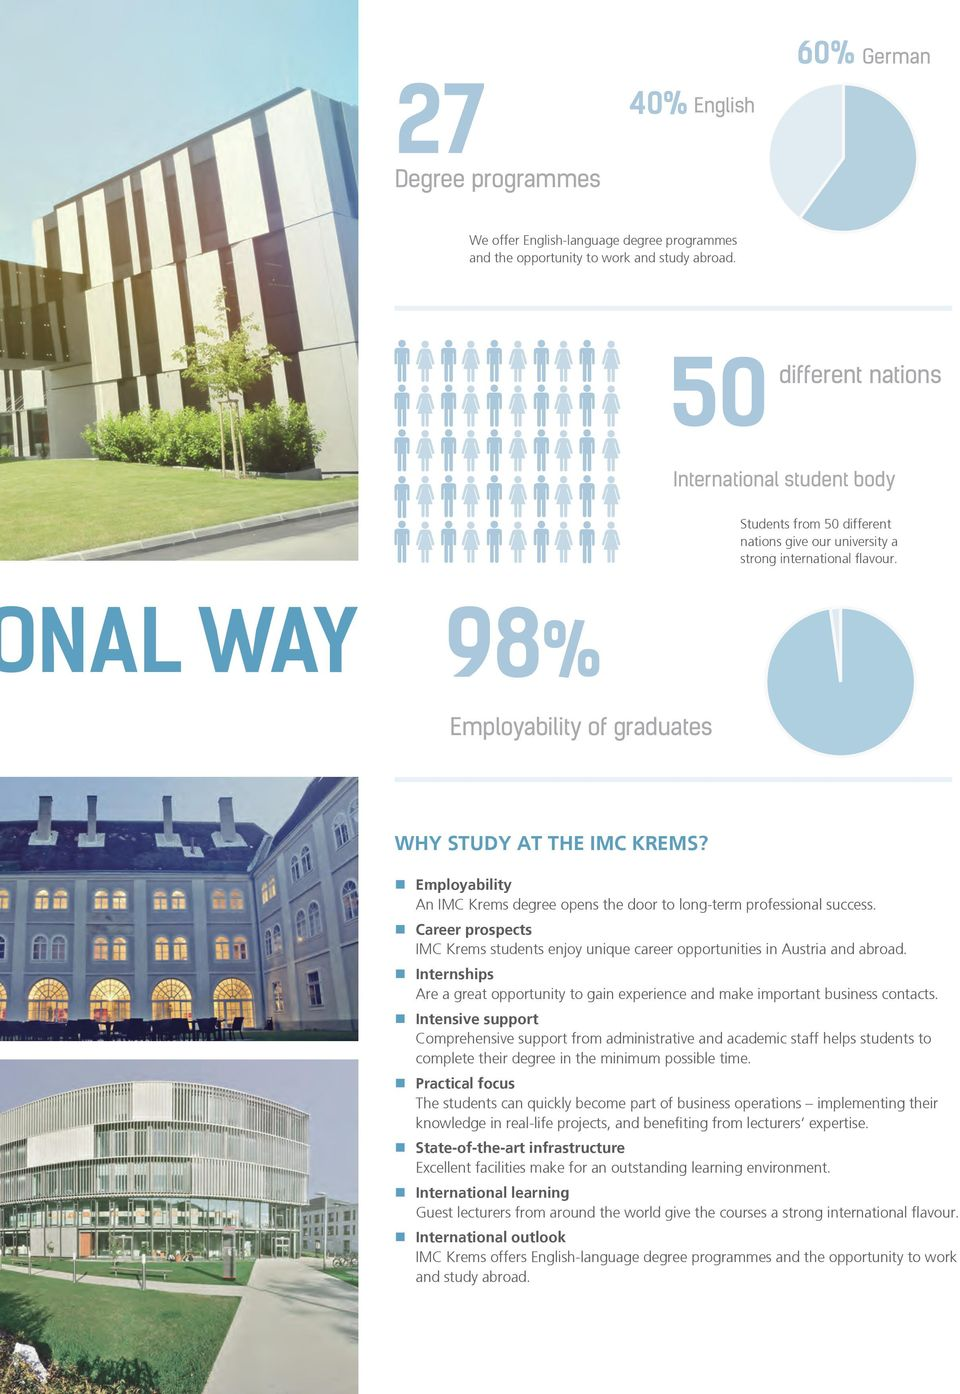 nal way 98% Employability of graduates Why study at the IMC Krems? Employability An IMC Krems degree opens the door to long-term professional success.